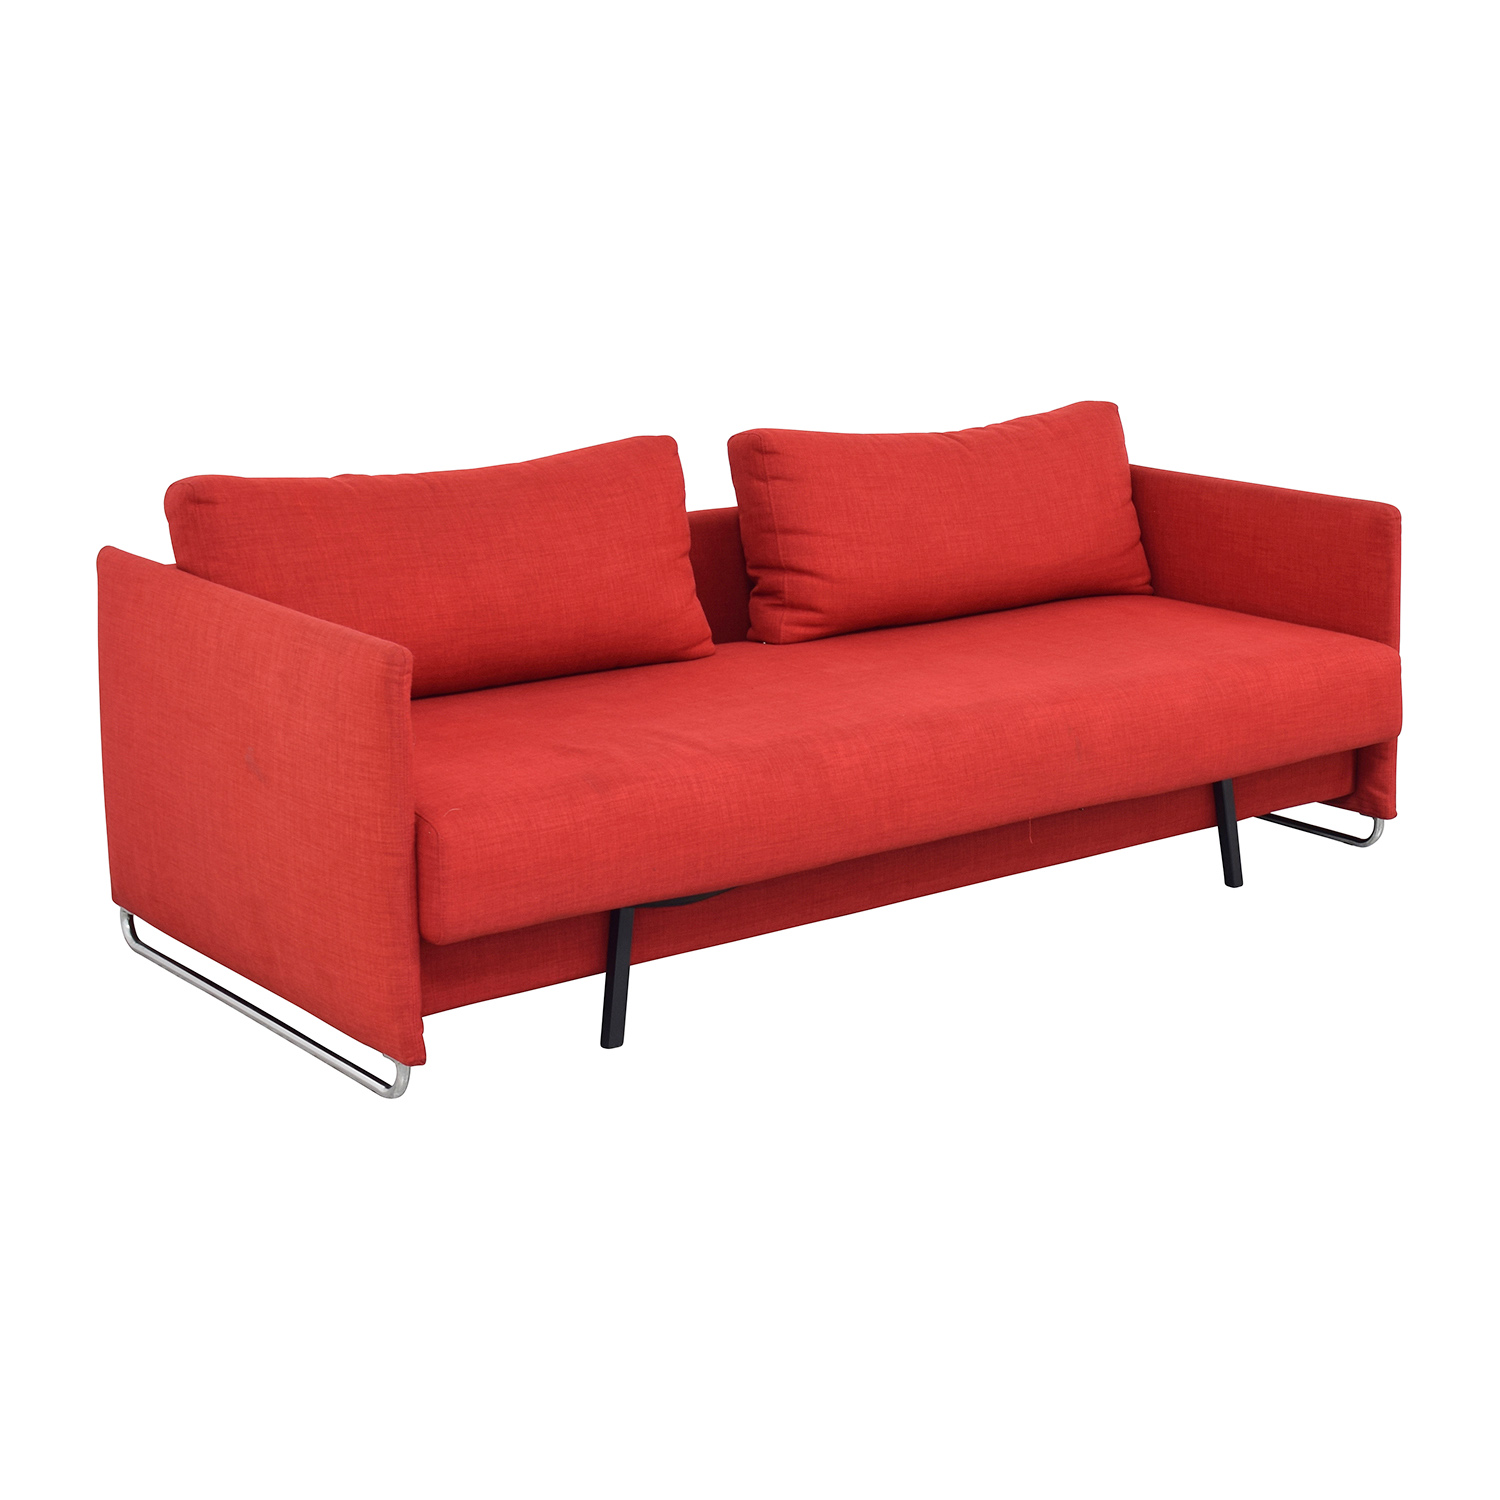 70% OFF CB2 CB2 Tandom Red Sleeper Sofa Sofas